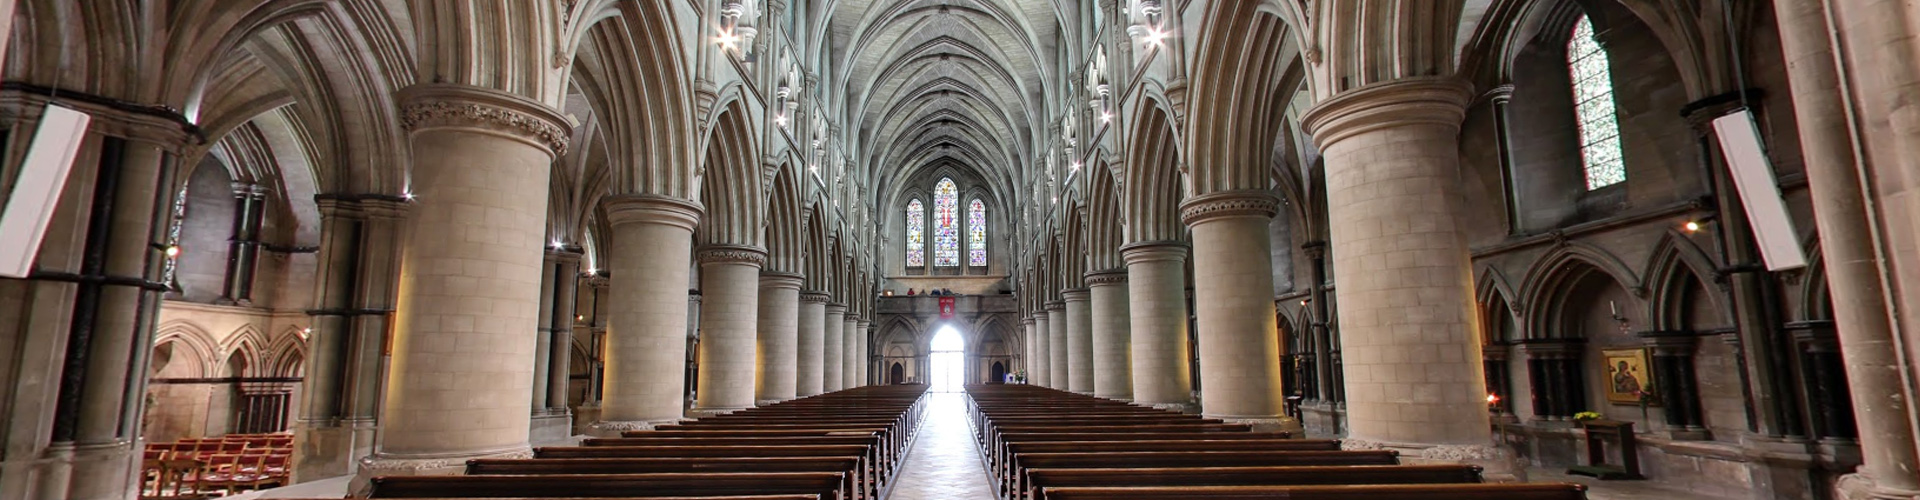 cathedral-inside21